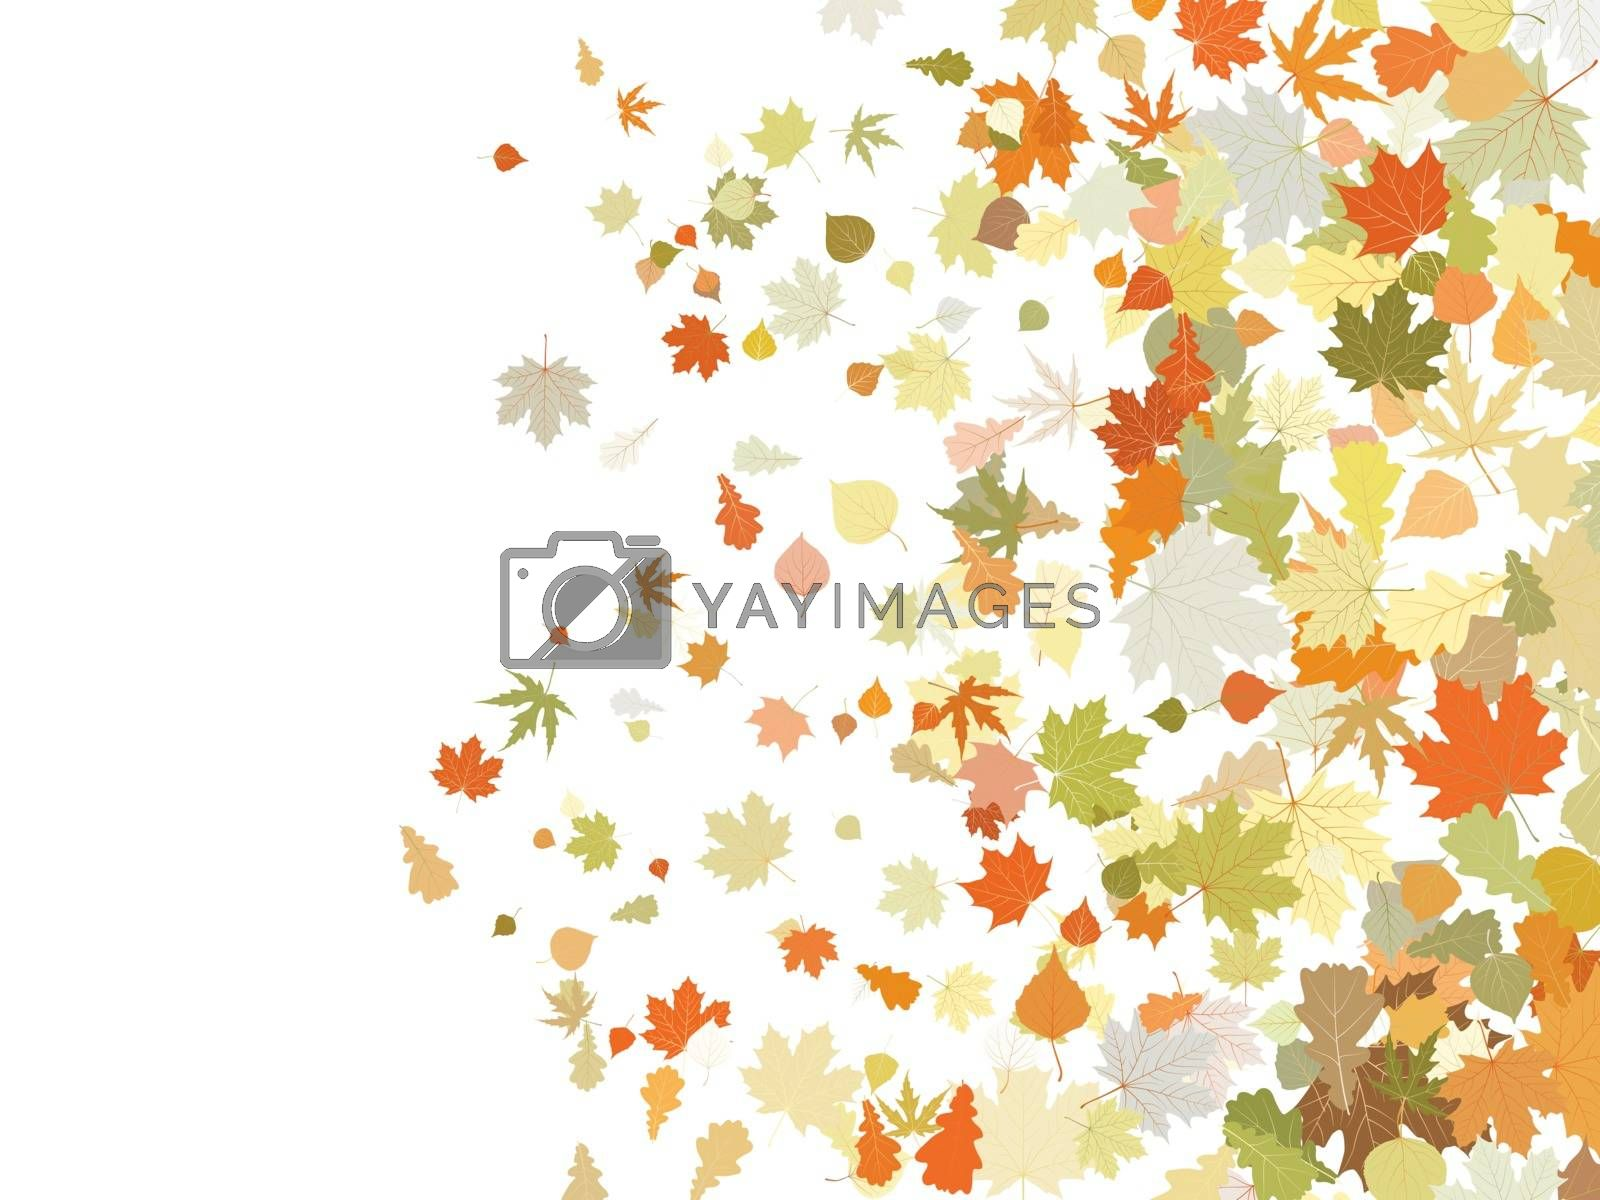 Atumnall leaves, warm illustration. EPS 8 vector file included